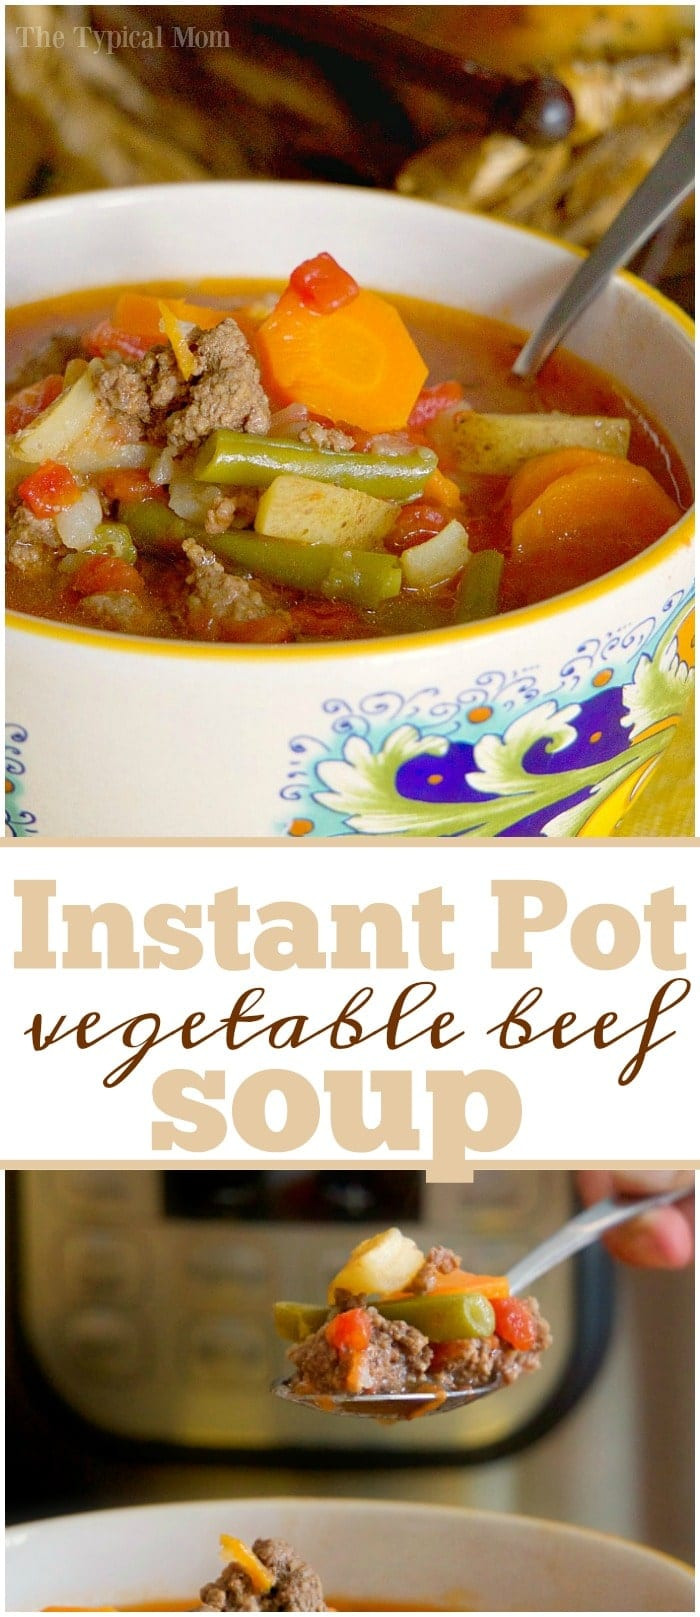 Instant Pot Soup Recipes Healthy  Instant Pot Ve able Beef Soup · The Typical Mom